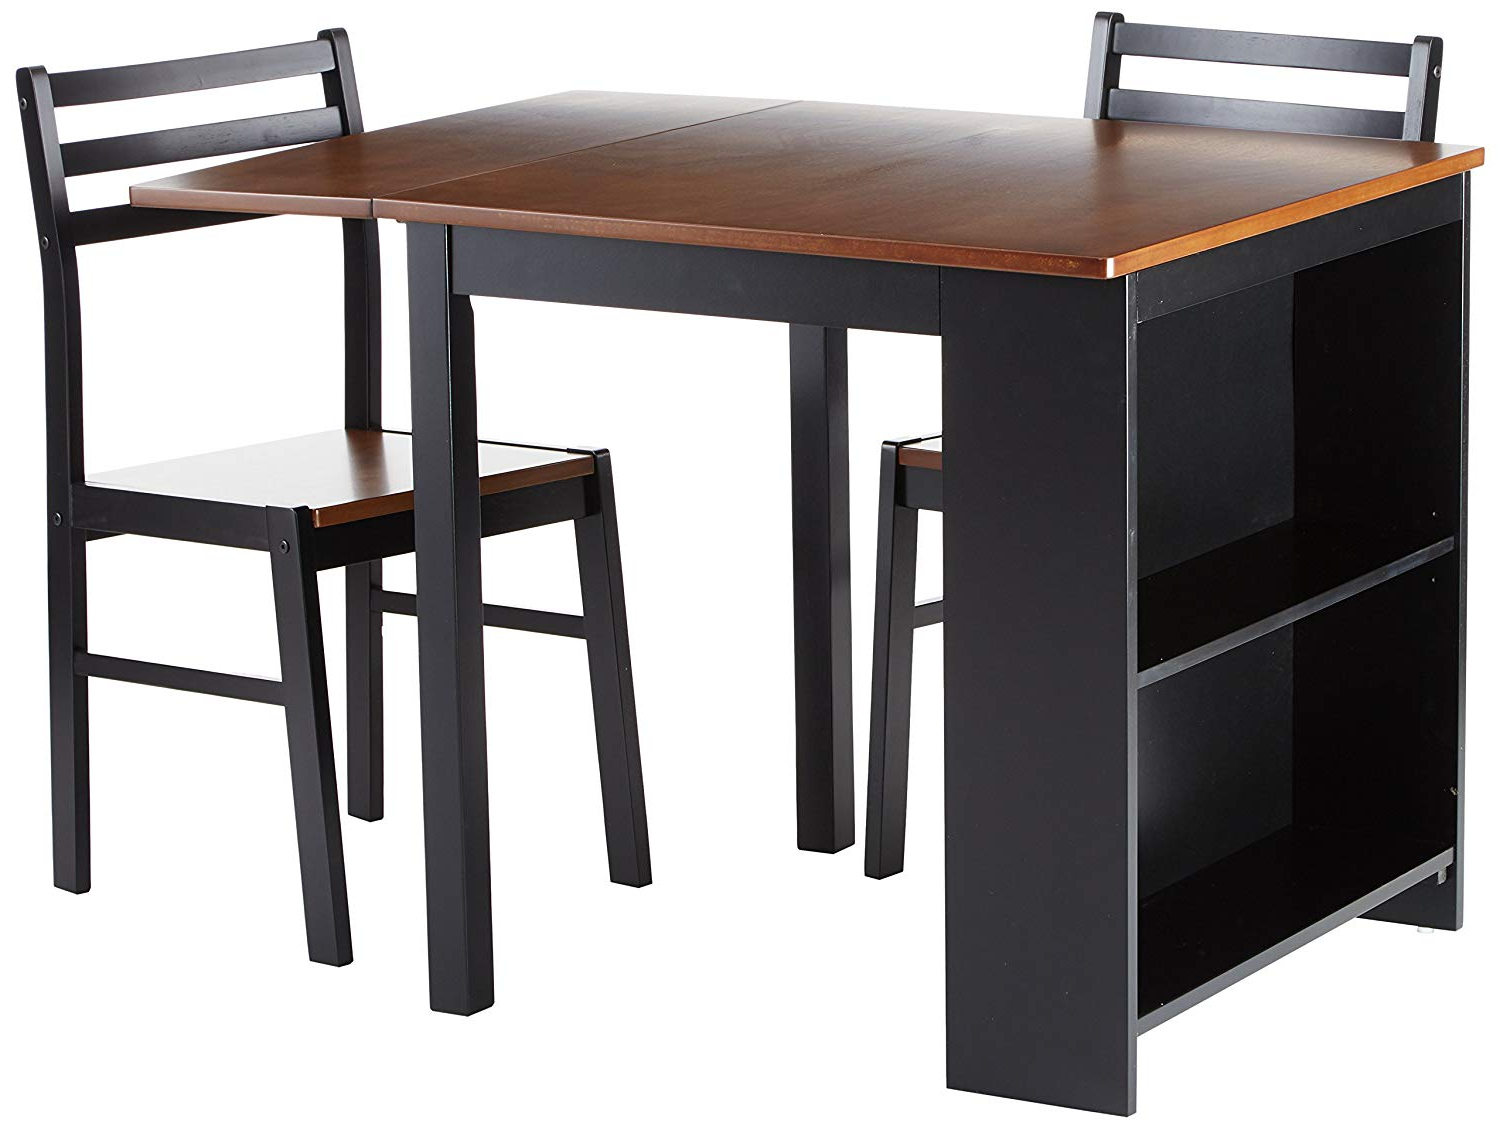 Persia 3 Piece Breakfast Dining Set Brown And Black For Best And Newest 3 Piece Breakfast Dining Sets (View 13 of 20)